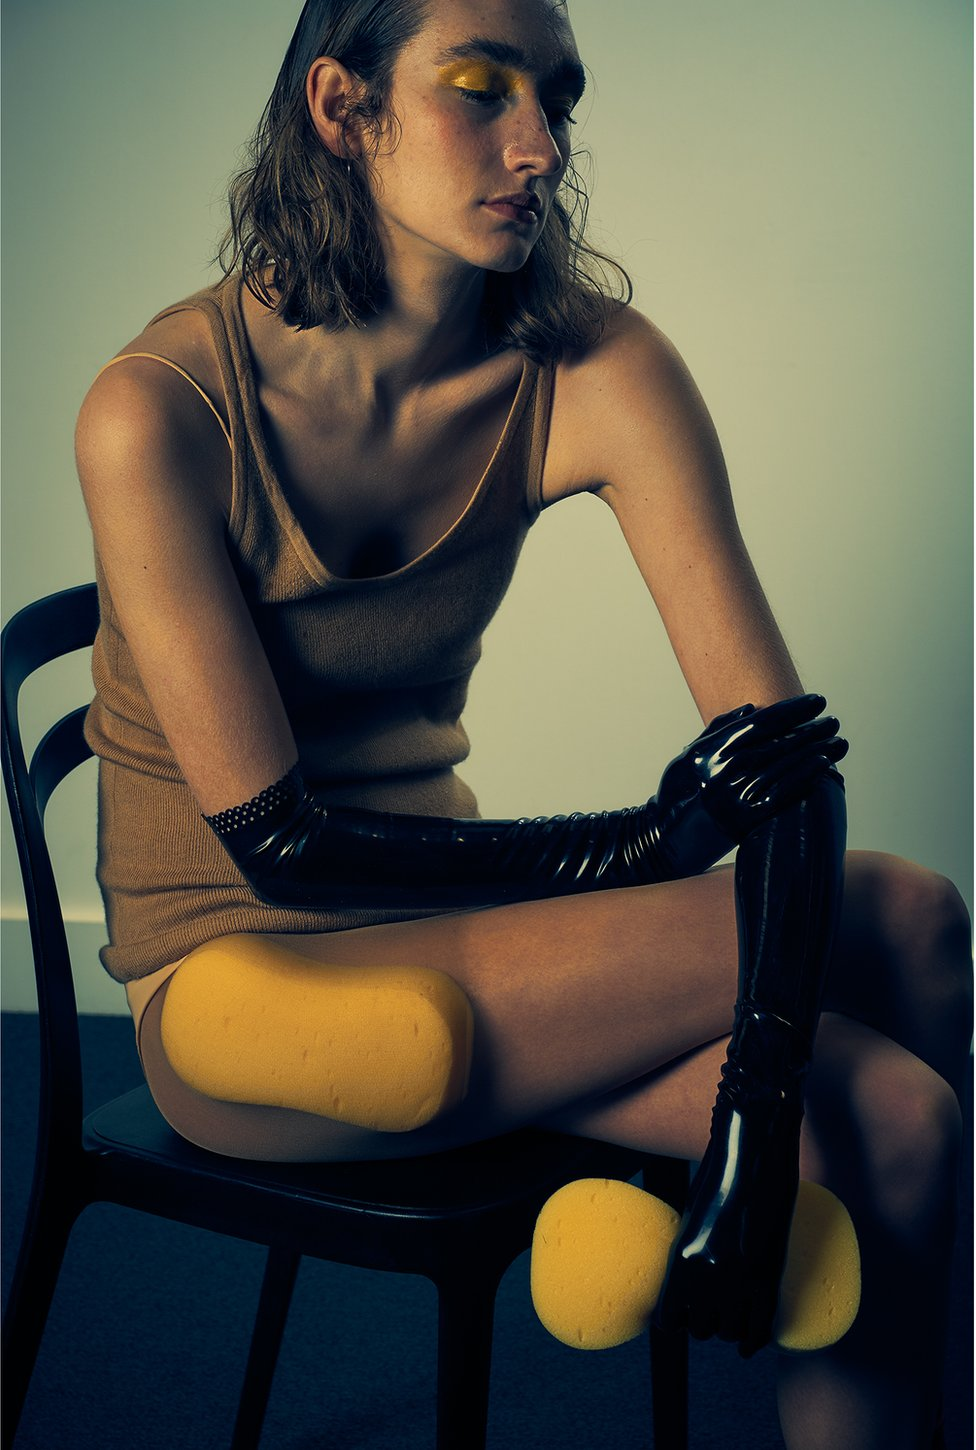 A model sits on a chair with a sponge clutched in her hand and one attached to her thigh